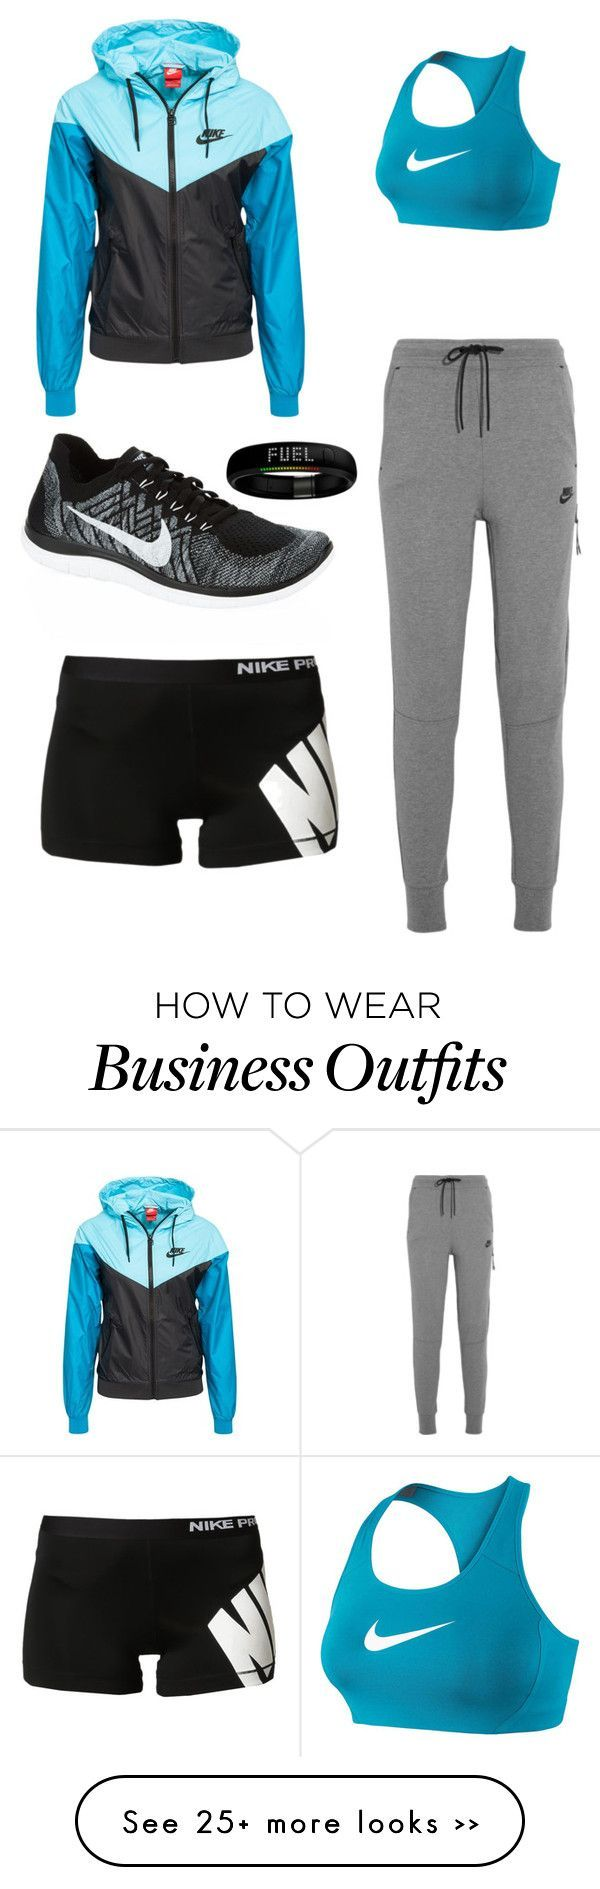 this outfit drew my attention because the color scheme is attractive but it can also work for indoor or outdoor workouts